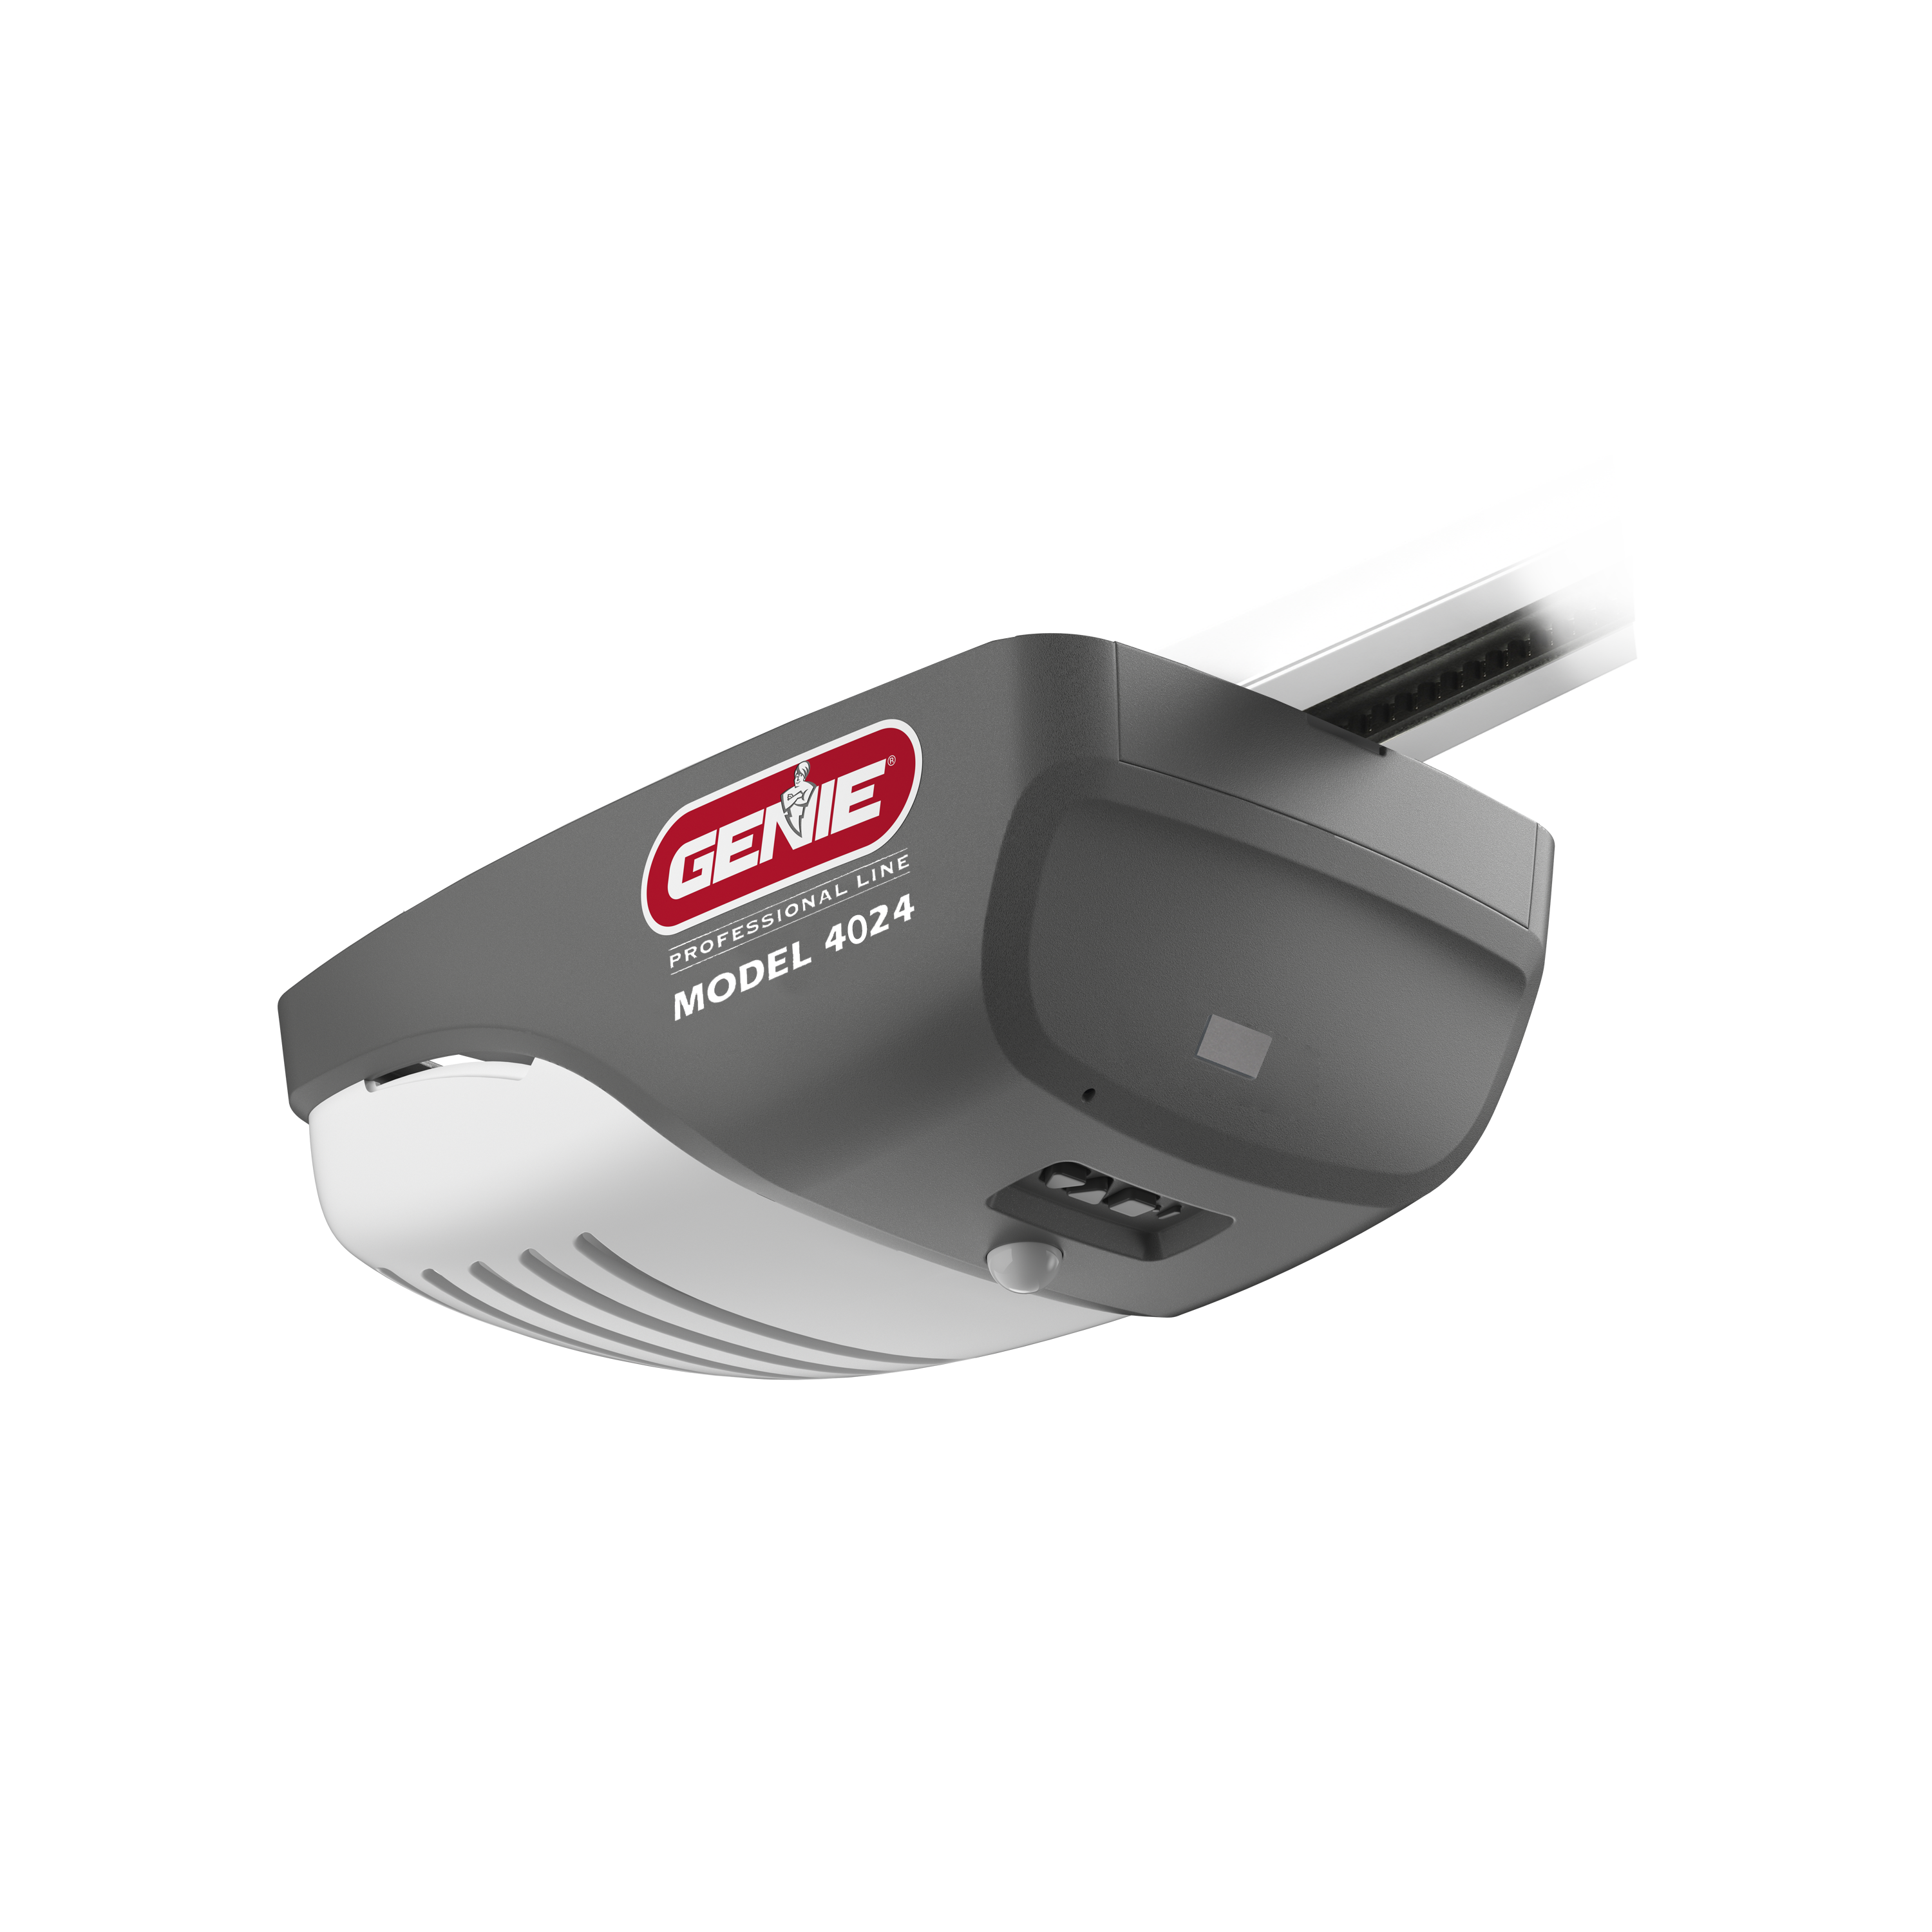 Model 4024 Garage Door Opener By Genie